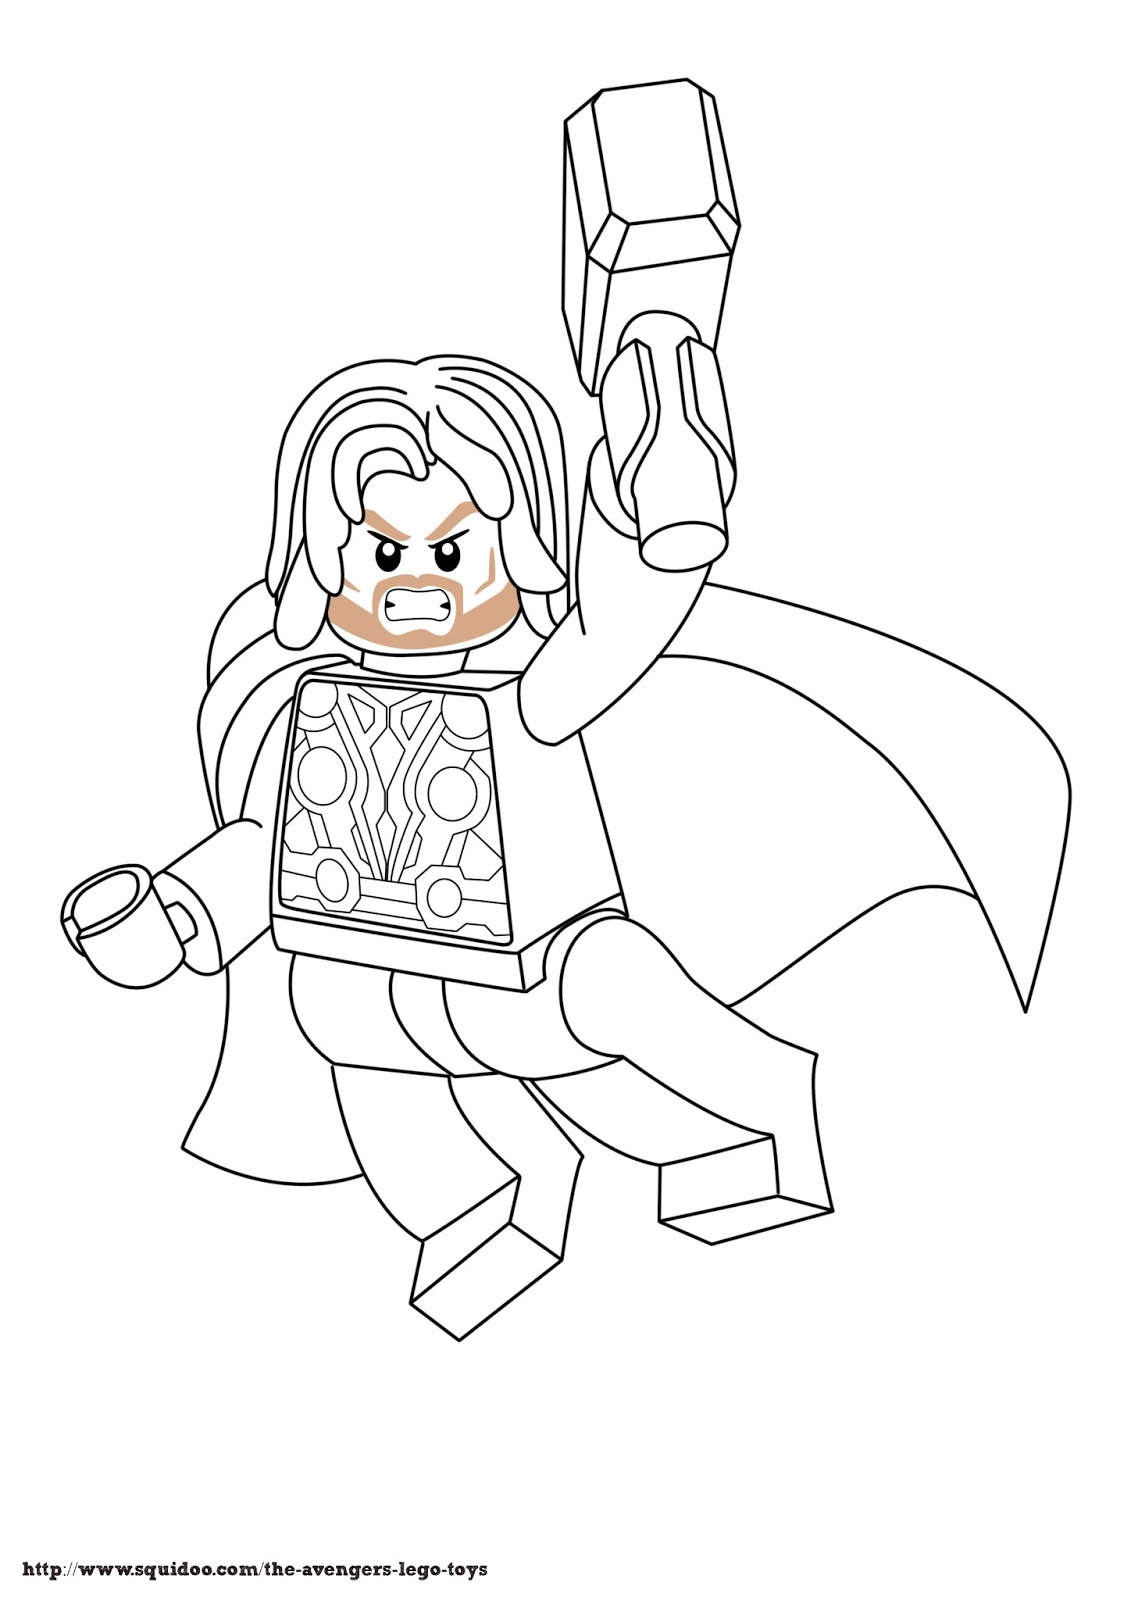 Lego Avengers Coloring Pages At Getdrawings Com Free For